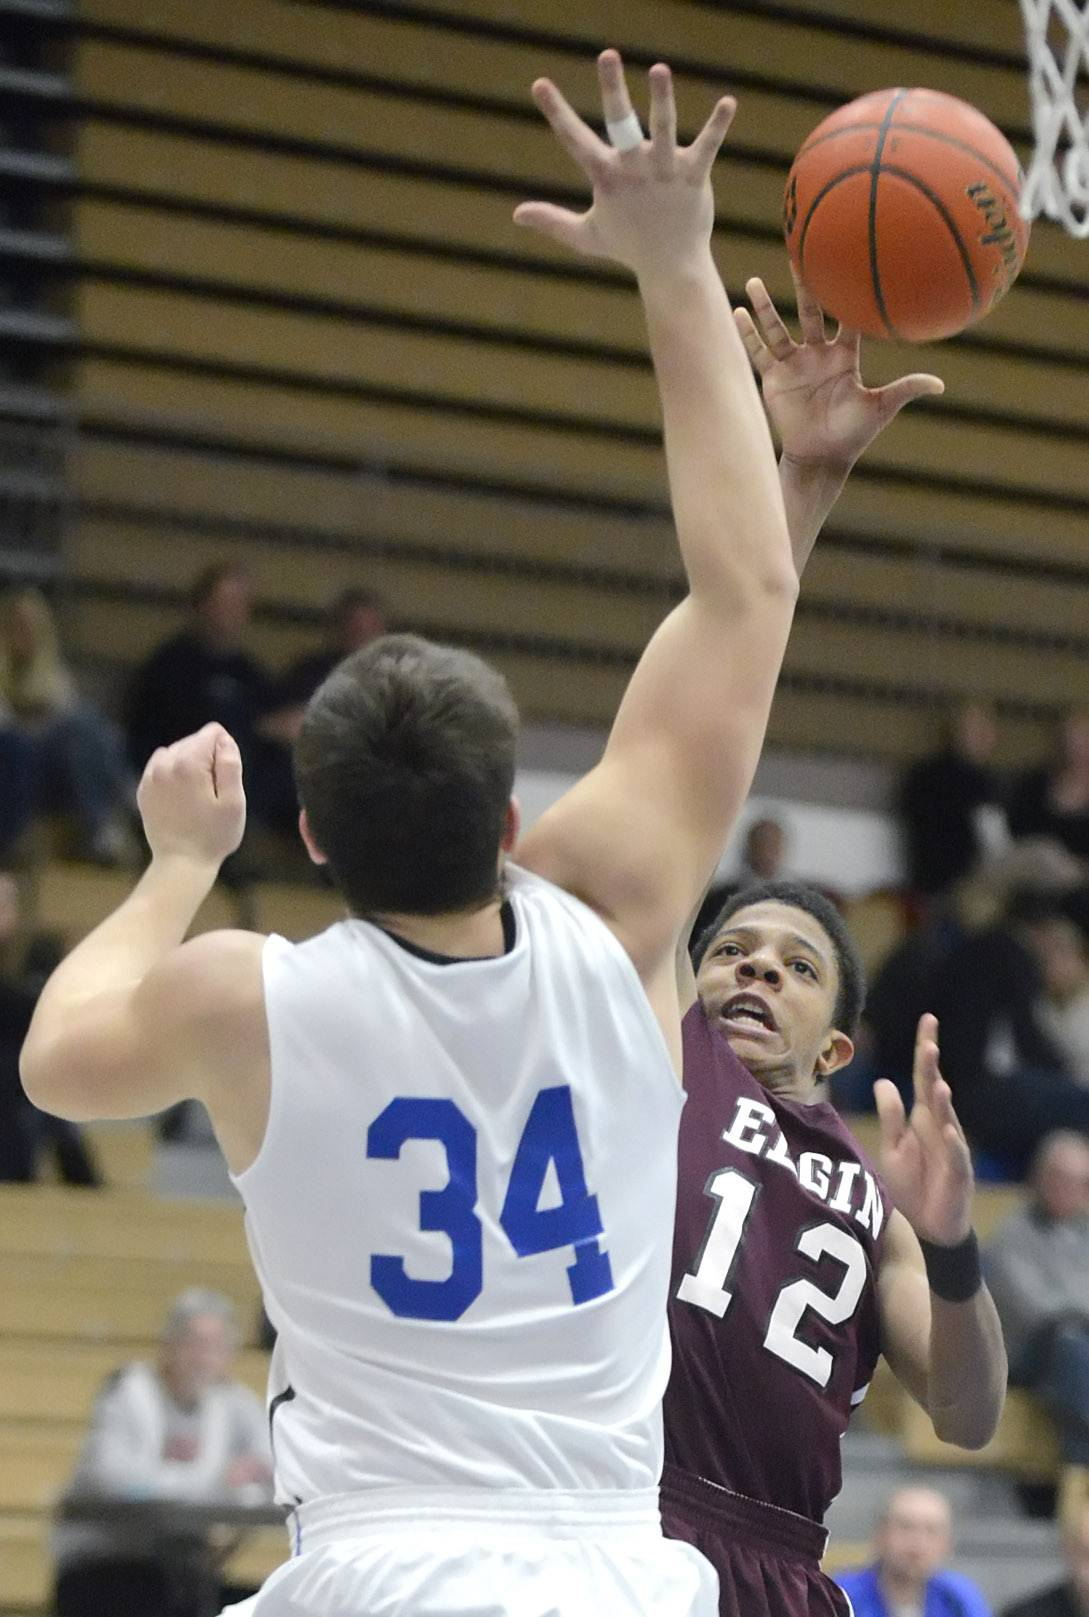 Elgin's Donte Harper shoots around and over a block by St. Charles North's Garrett Johnson in the third quarter on Tuesday, February 11.